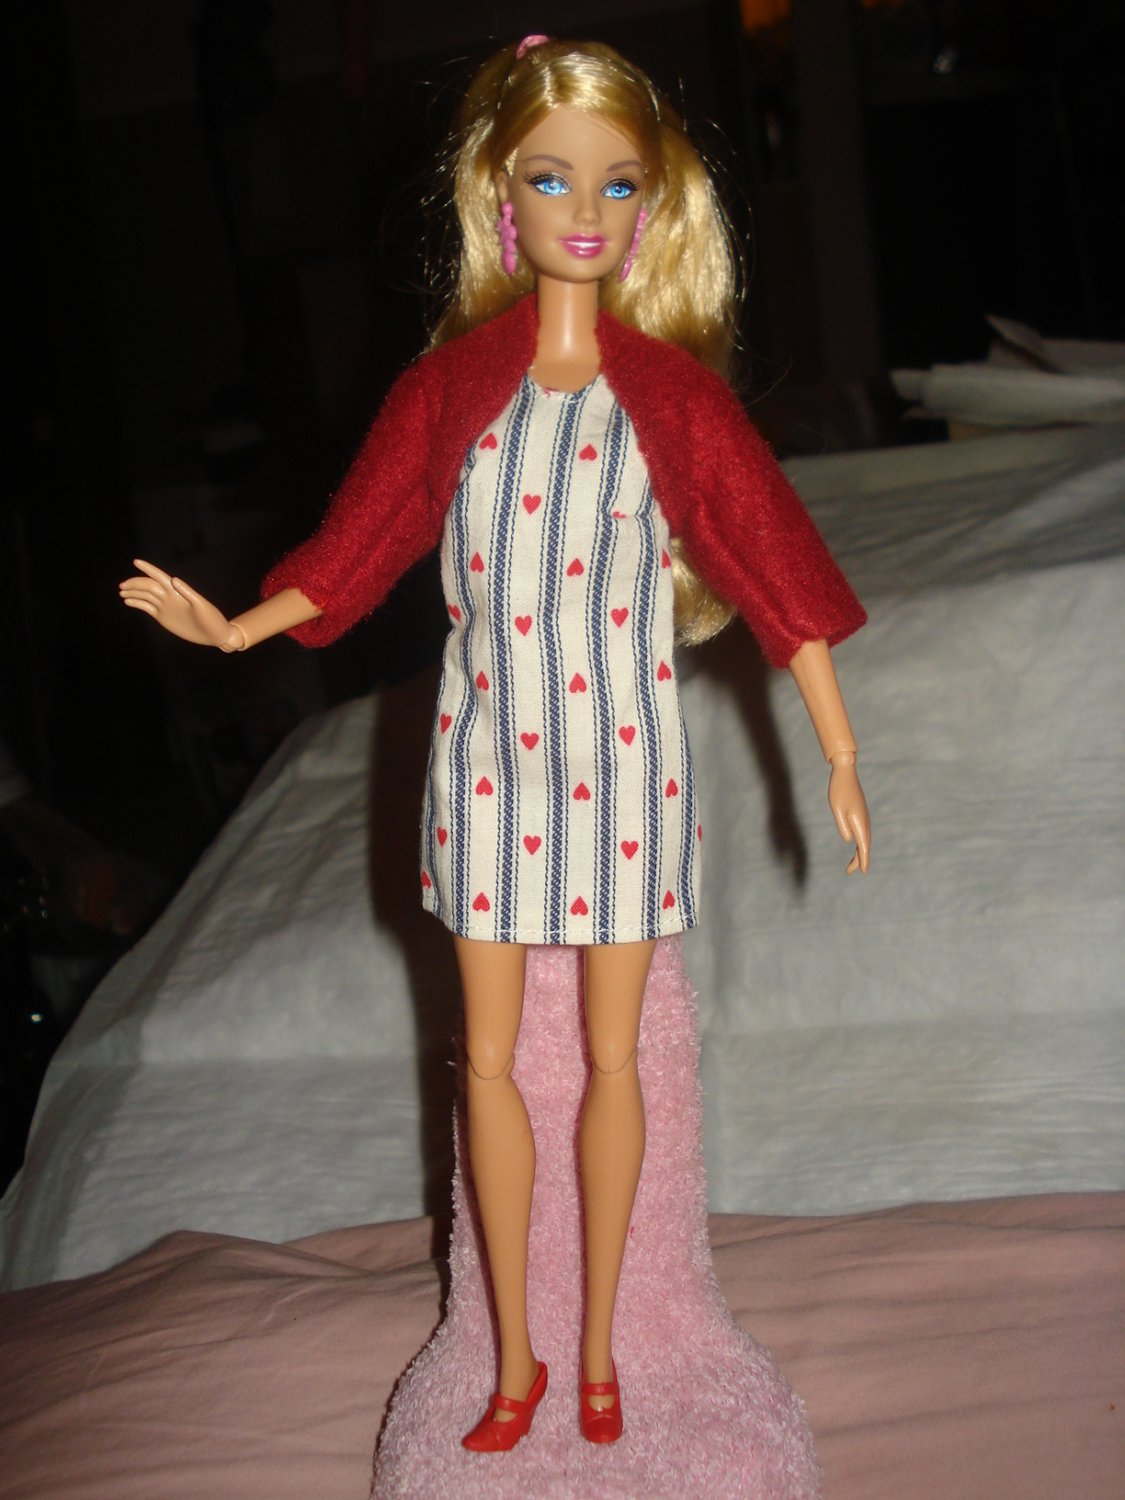 Short red heart print dress and maroon jacket for Barbie Doll - ed90